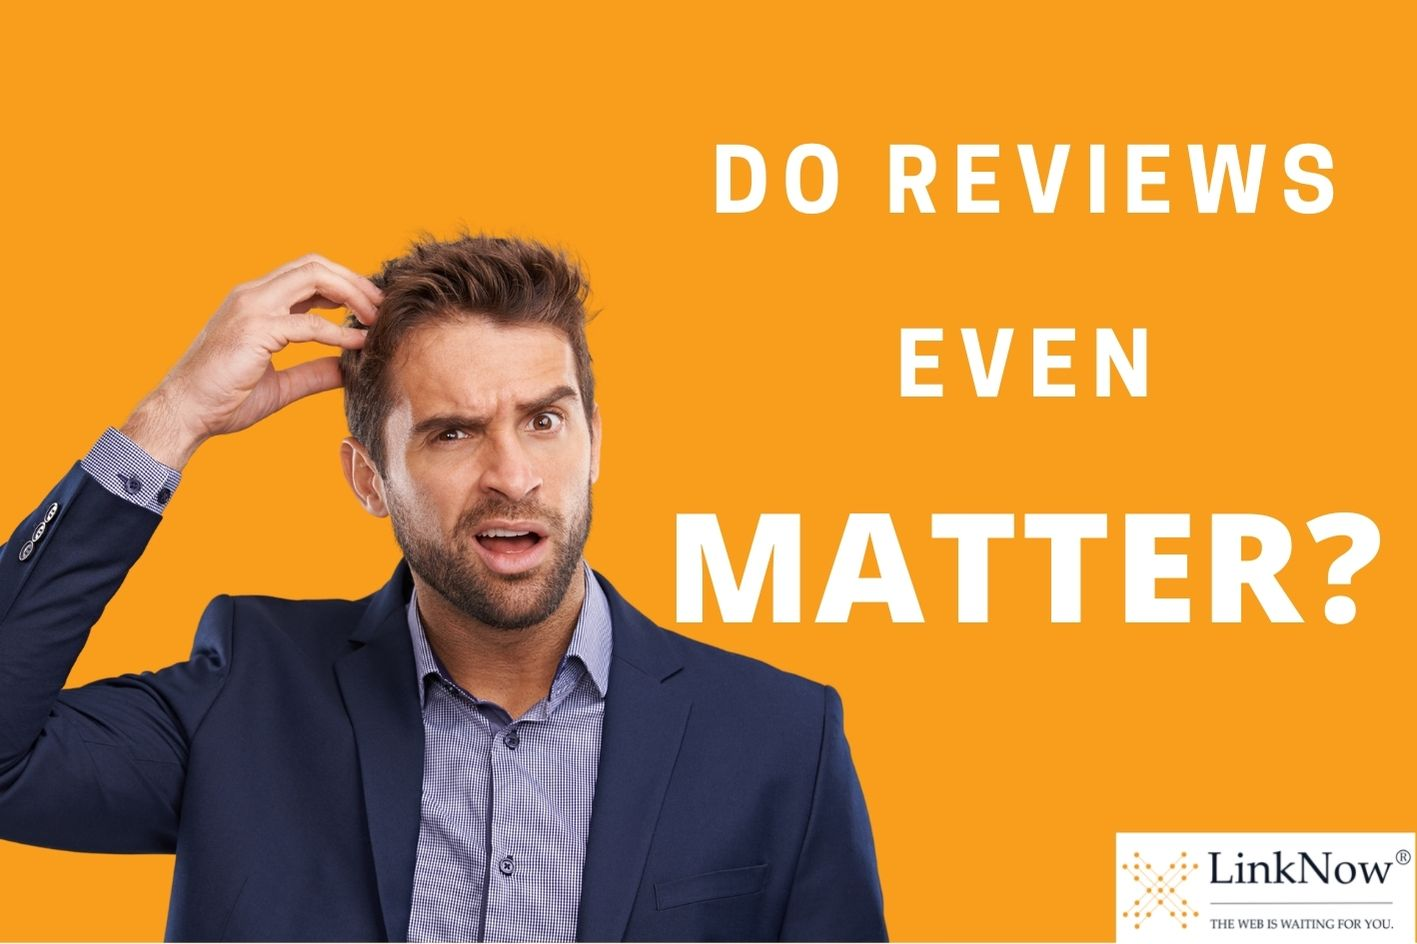 Man in suit scratching his head with caption: Do reviews even matter?